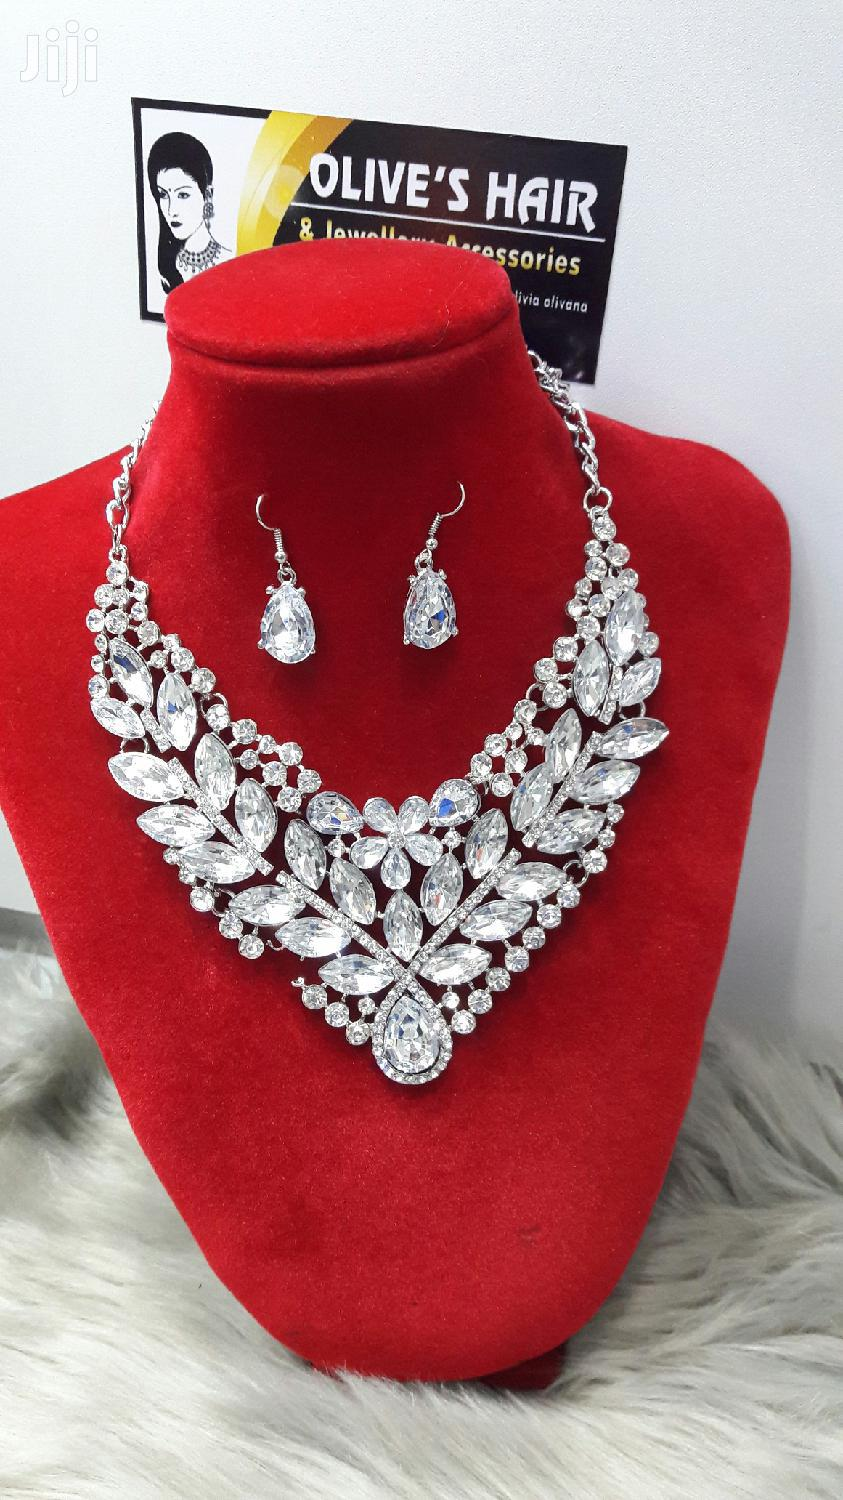 Necklaces Available